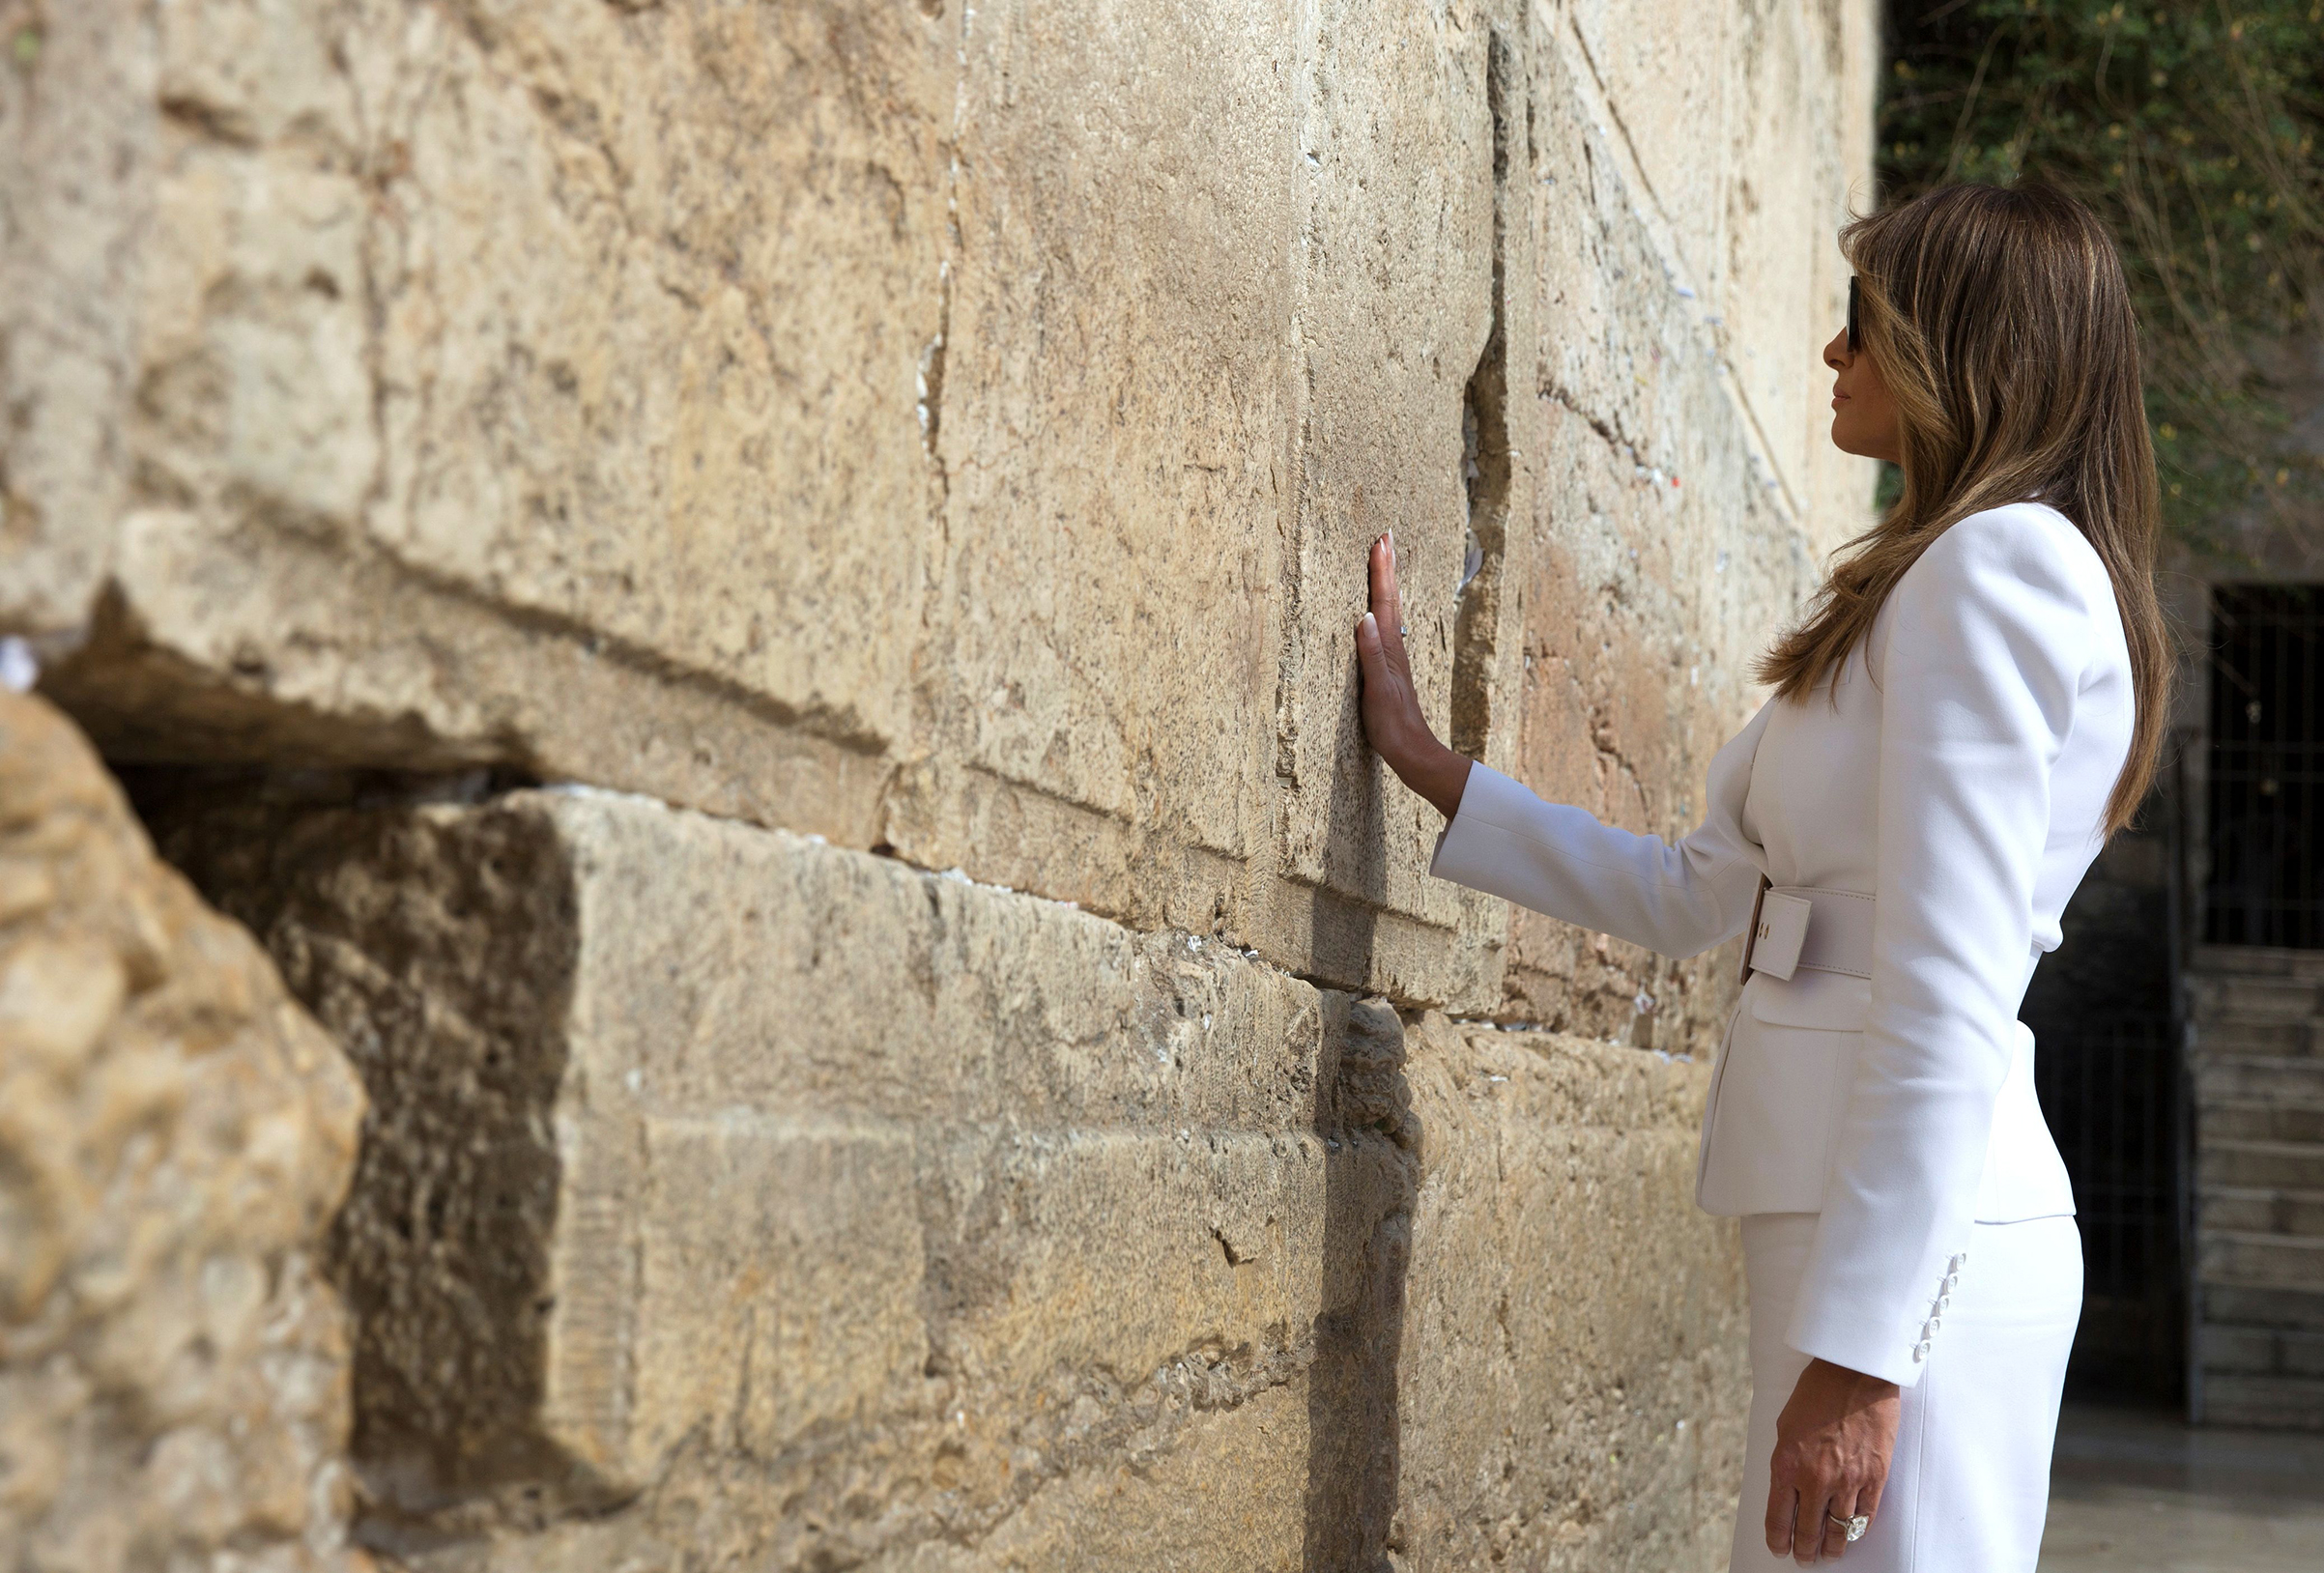 First lady Melania Trump wearing white Michael Kors Collection suit, visits the Western Wall, the holiest site where Jews can pray, in Jerusalems Old City on May 22, 2017.